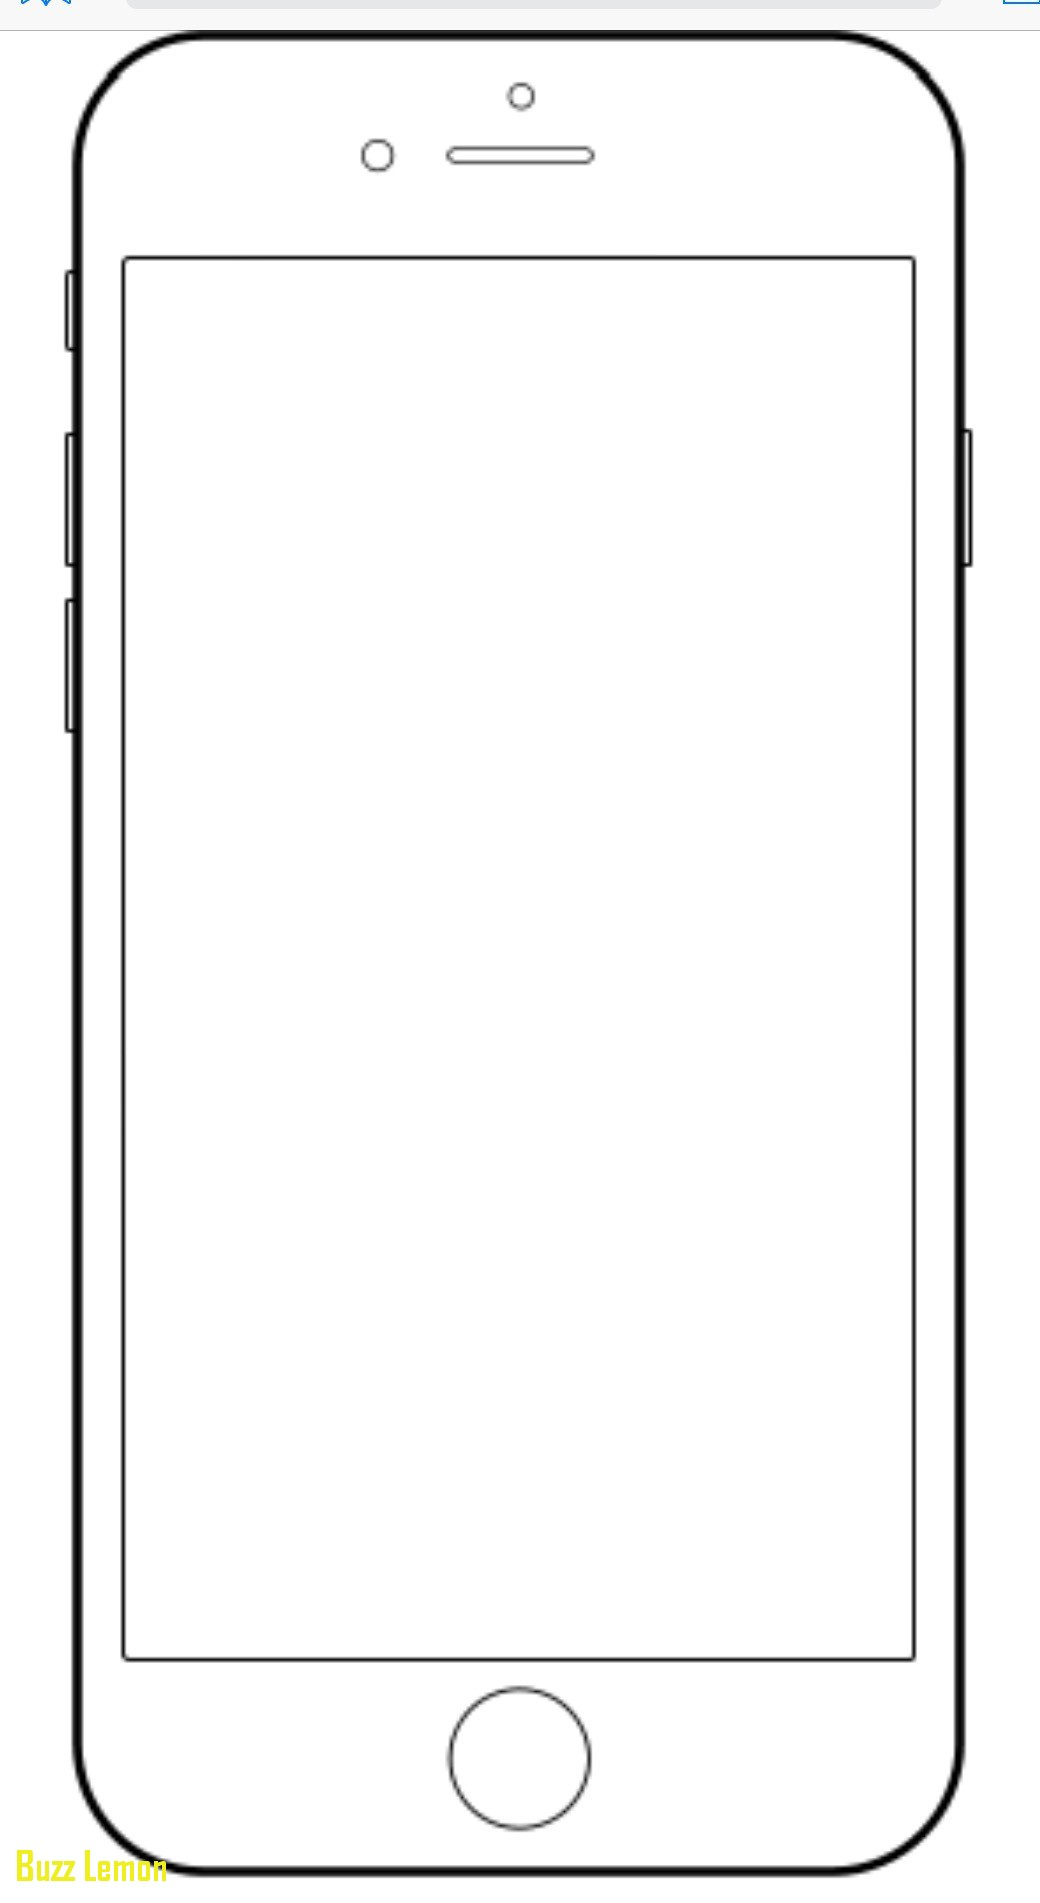 Luxury iPhone 6 Coloring Page Download Of Coloring Pages attractive iPhone Page Bigrbaxmt New Ahmedmagdy Gallery